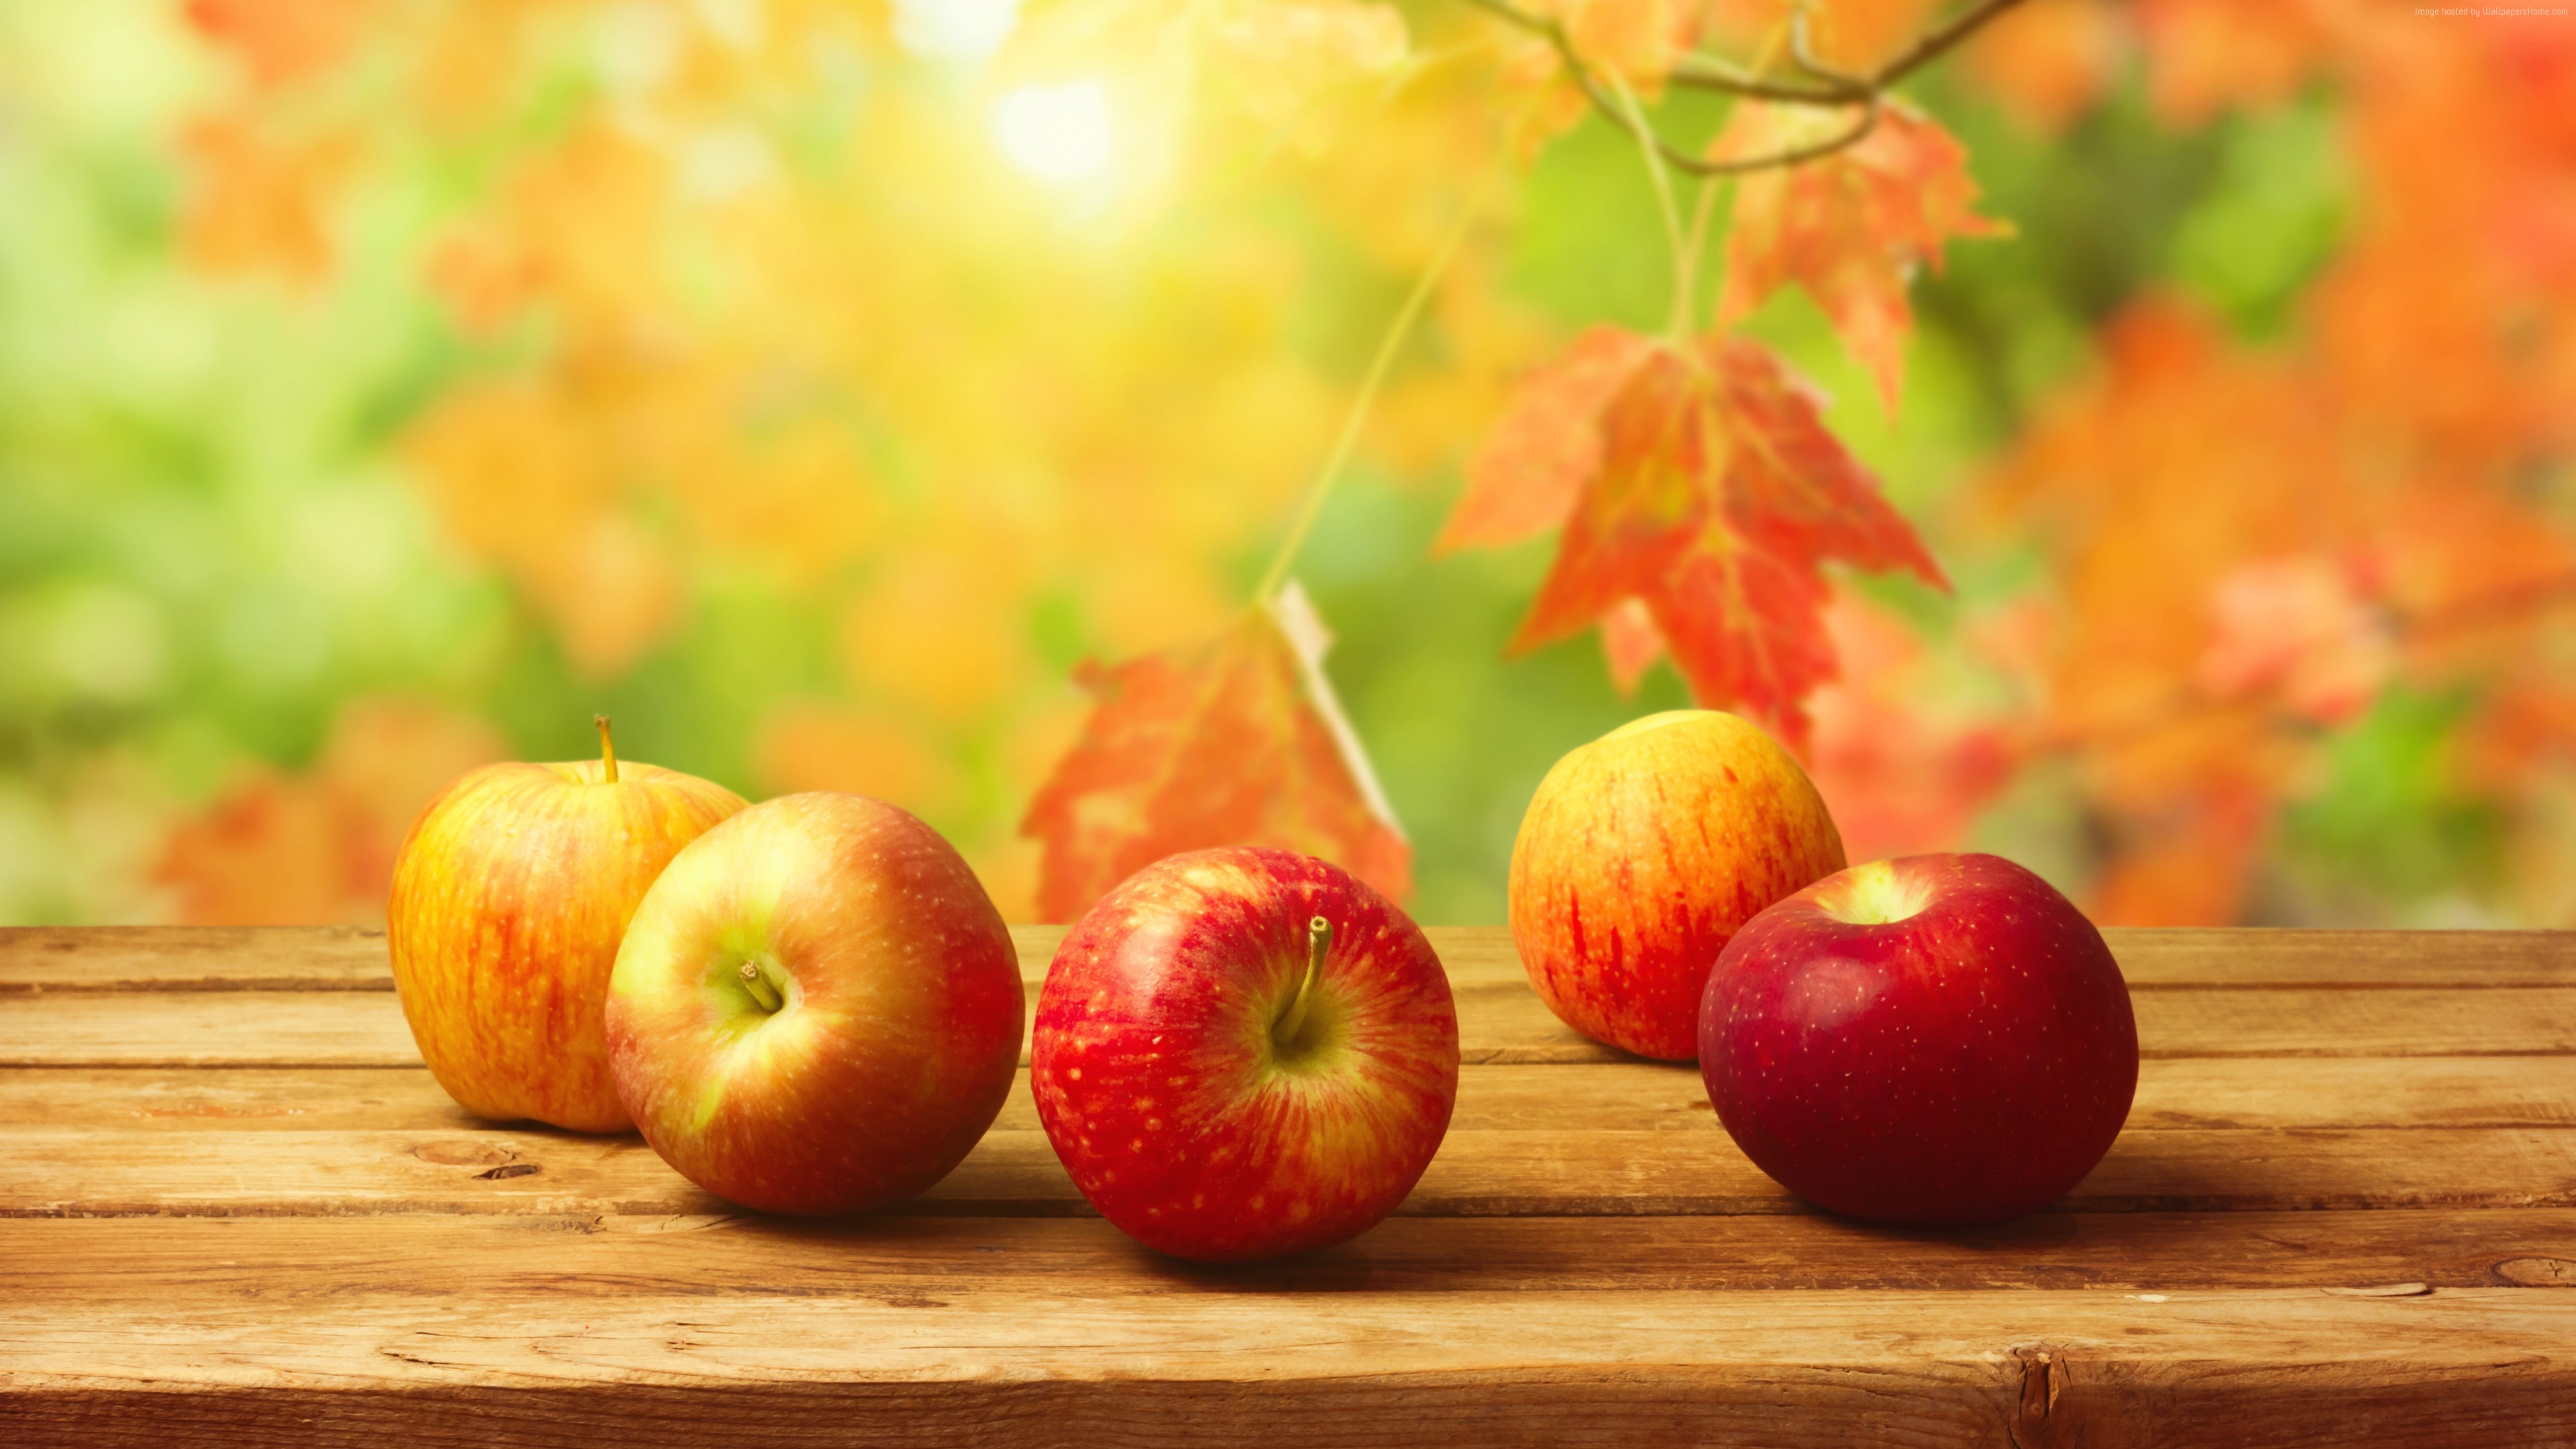 Wallpaper apple, fruit, autumn, 4k, Food